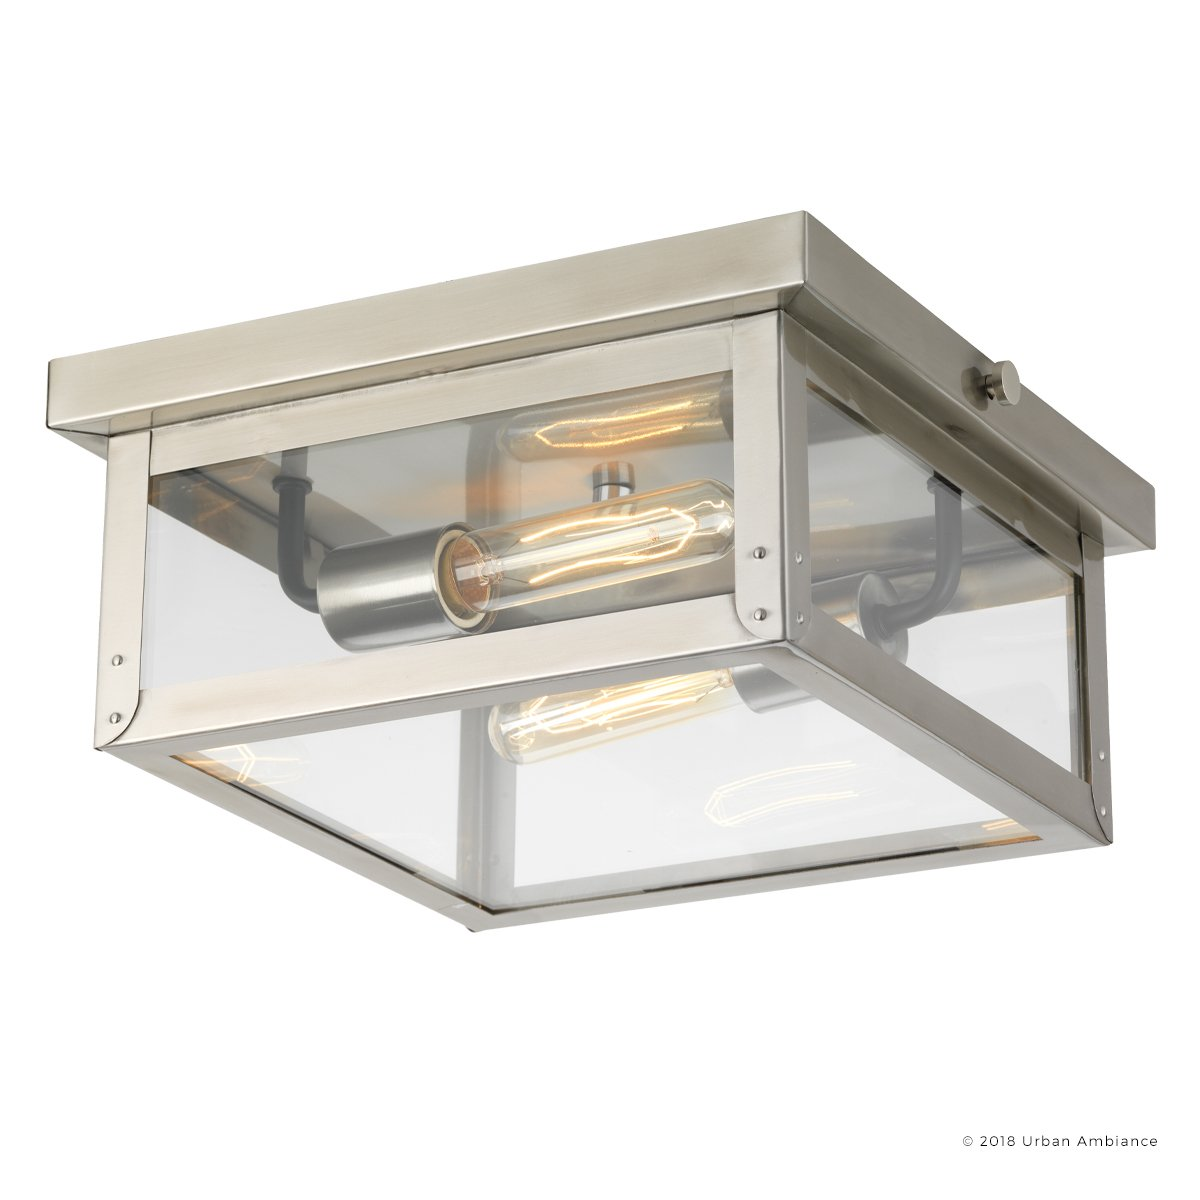 Luxury Modern Farmhouse Outdoor Ceiling, Small Size: 5.5''H x 12.375''W, with Nautical Style Elements, Stainless Steel Finish and Clear Flat Shade, UHP1133 from The Darwin Collection by Urban Ambiance